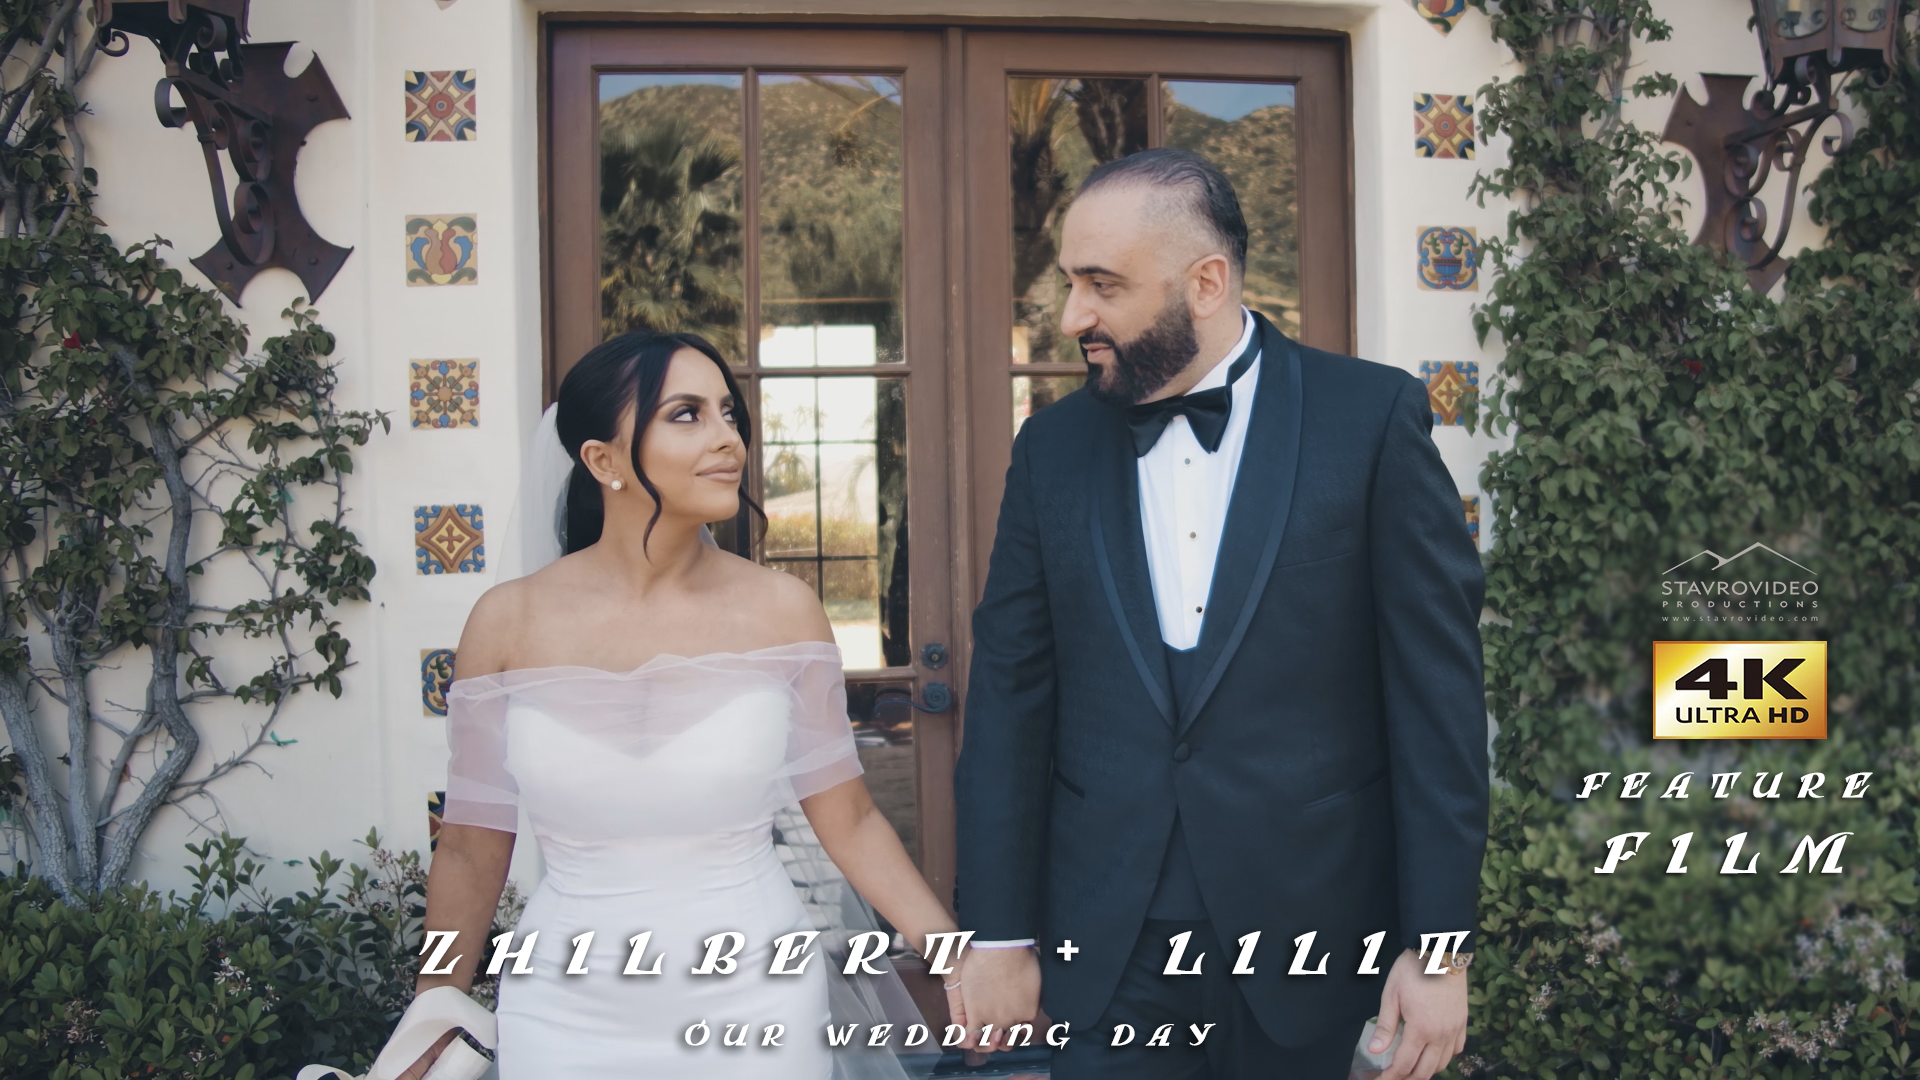 zhilbert + lilit | Los Angeles County, California | Hummingbird Nest Ranch